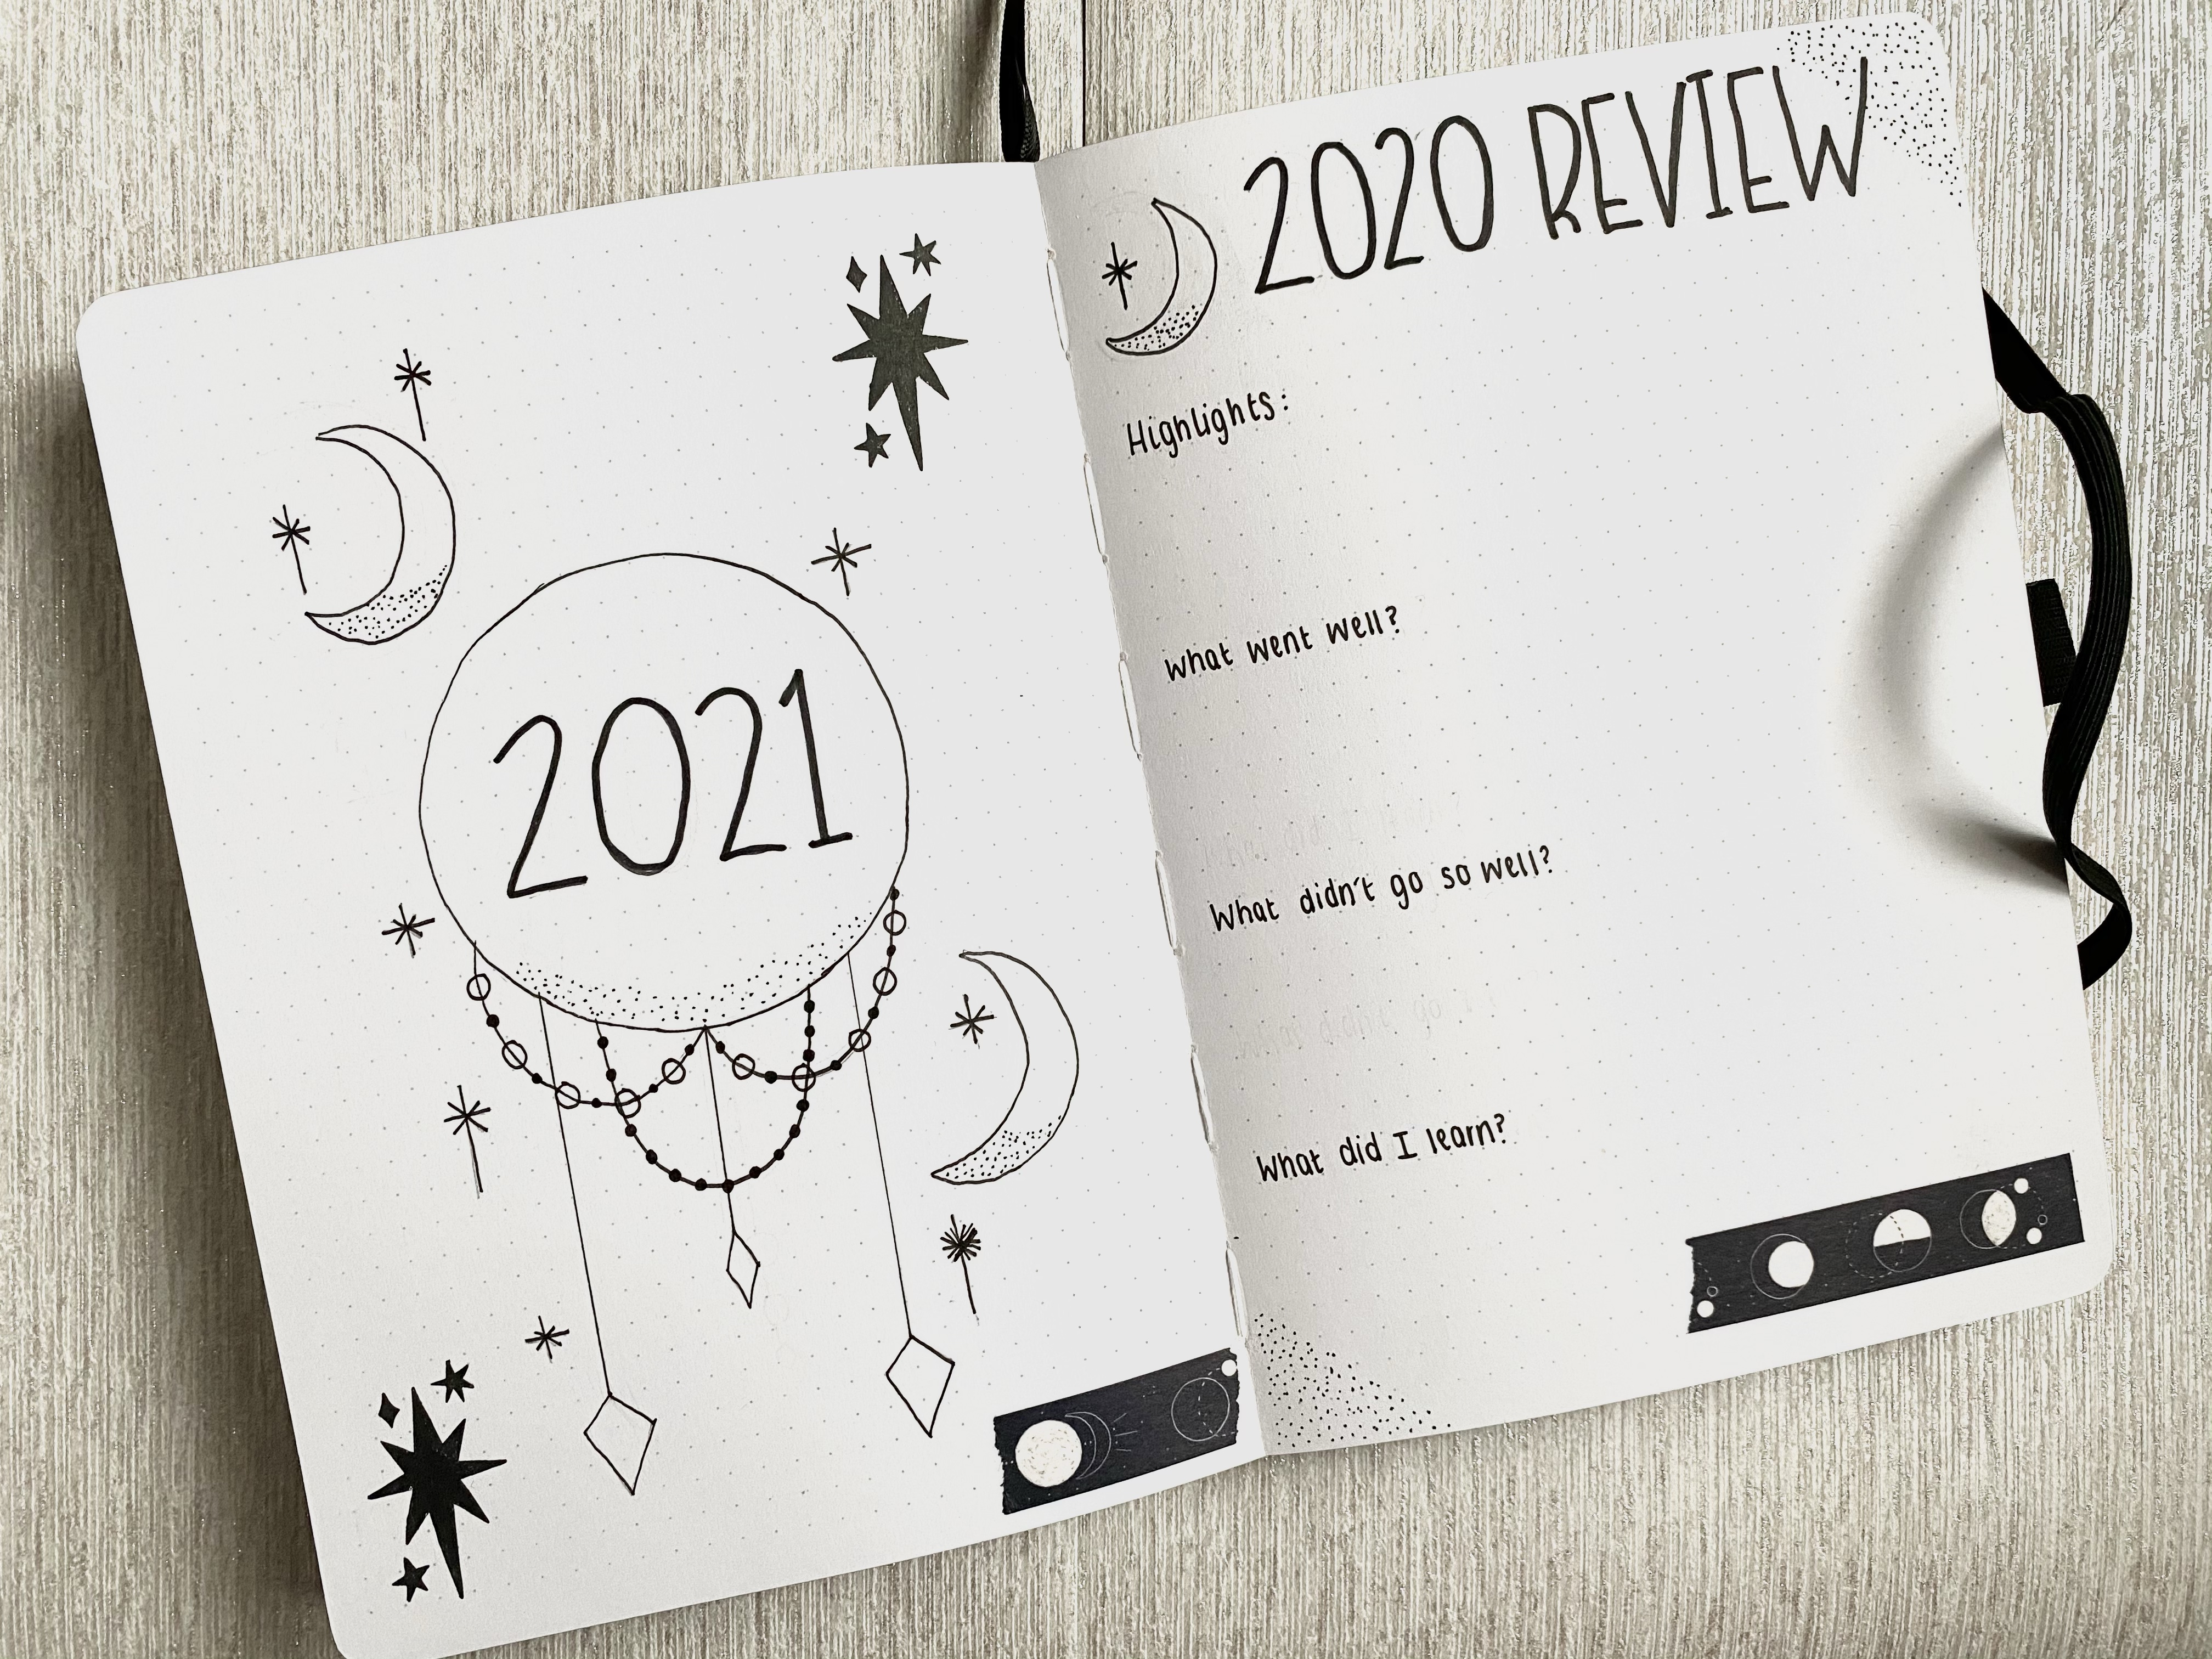 A bullet journal set up for 2021 using a black and white theme. The pages have moons, stars and moon washi tape on them. The first page on the left is a cover page and the page on the right is a review of 2020.